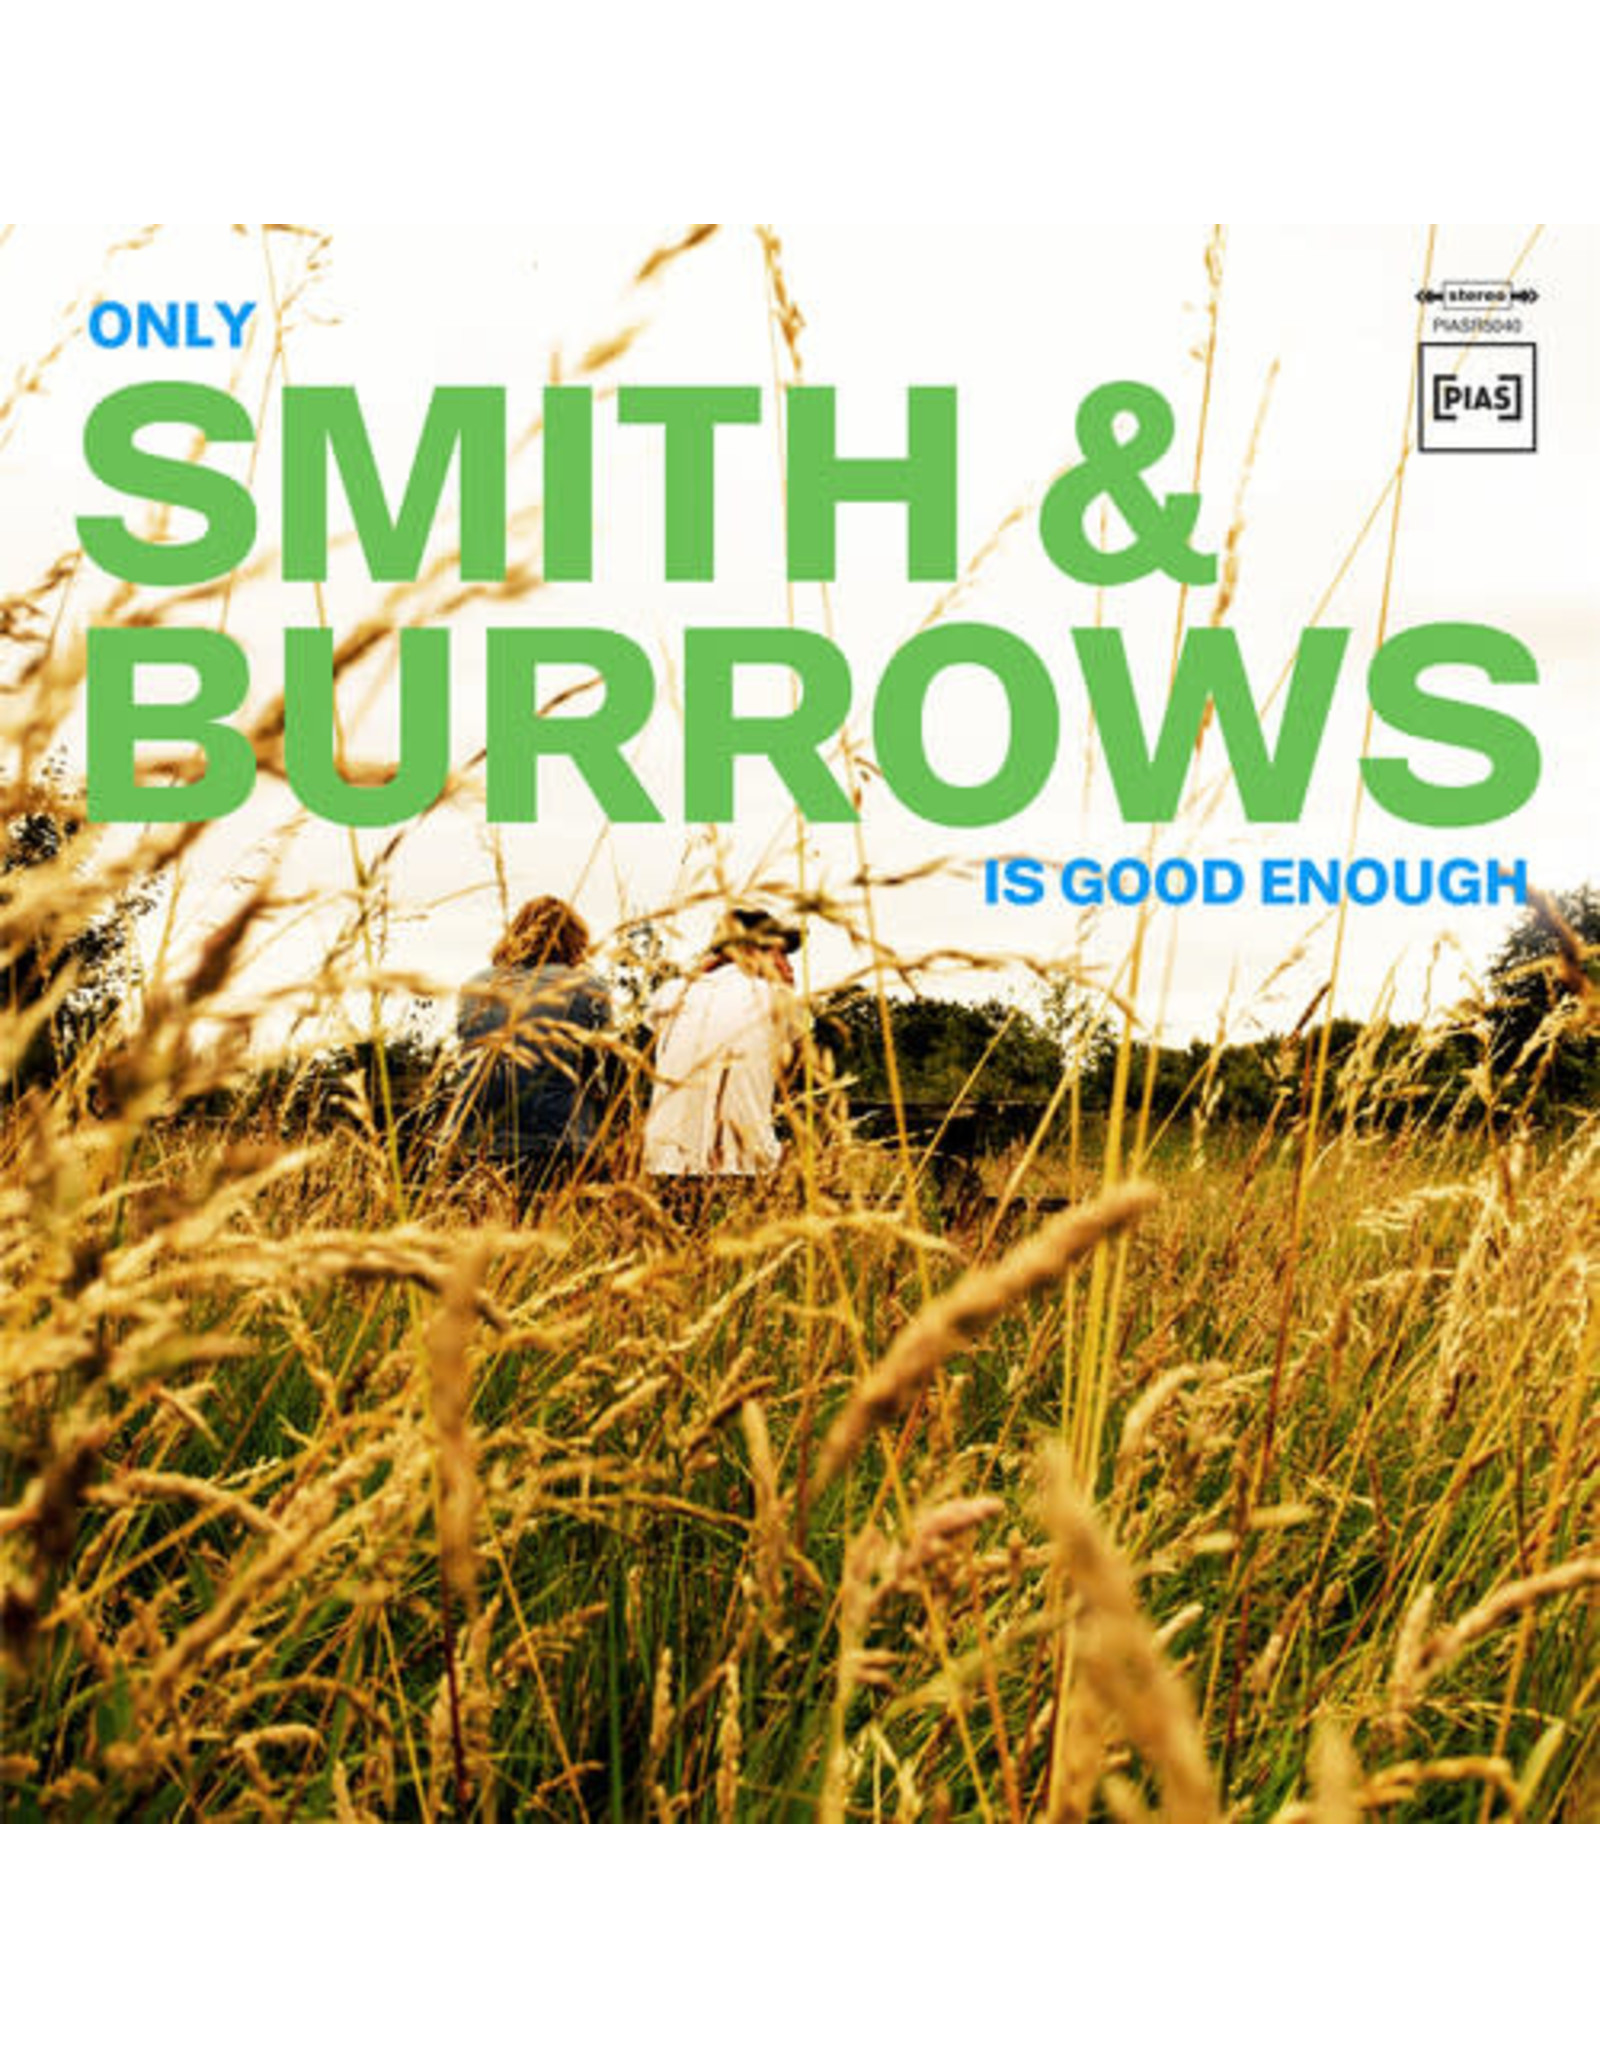 New Vinyl Smith & Burrows - Only Smith & Burrows Is Good Enough LP